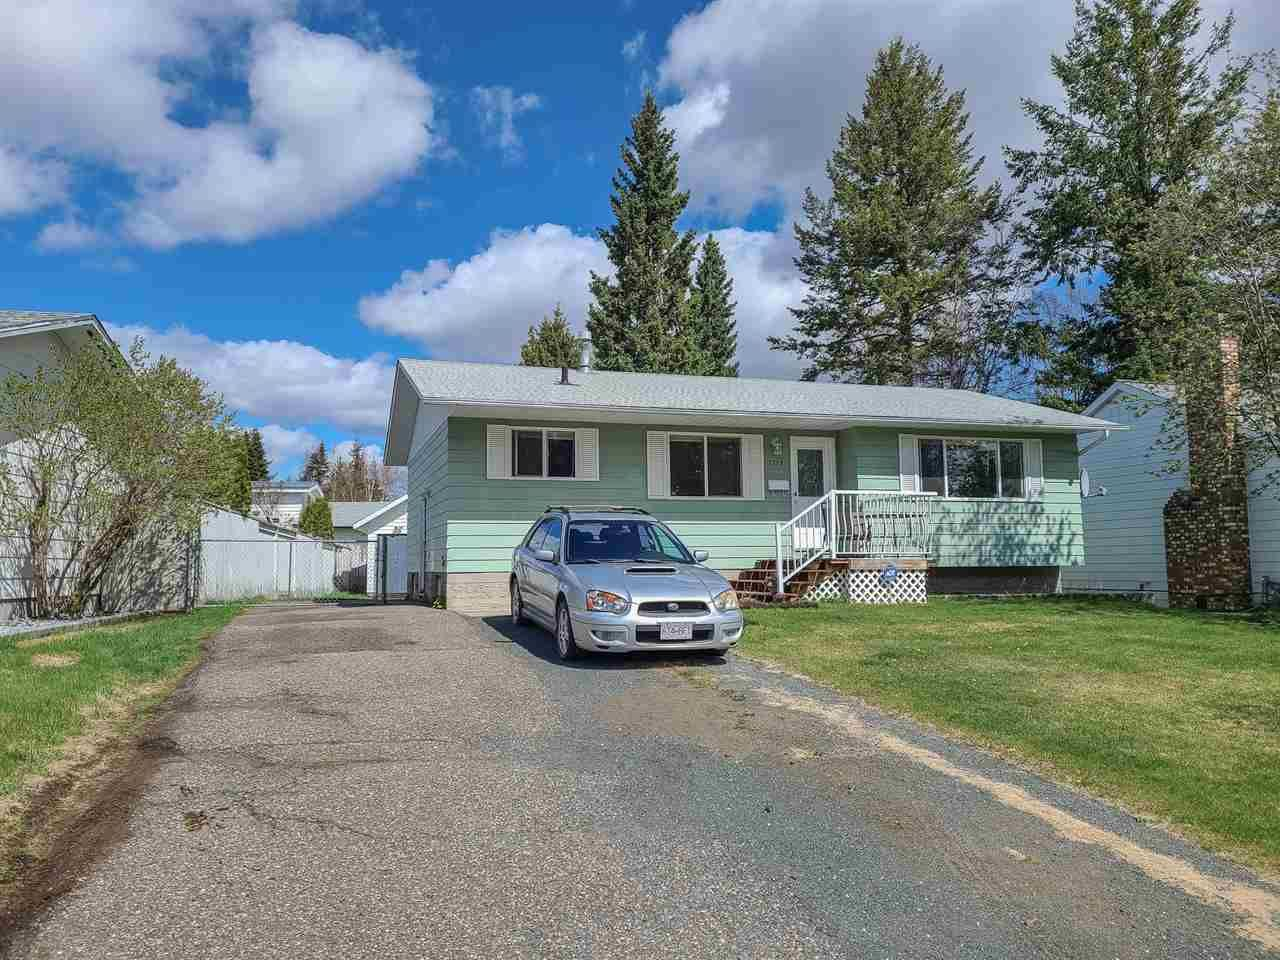 """Main Photo: 7778 LANCASTER Crescent in Prince George: Lower College House for sale in """"LOWER COLLEGE HEIGHTS"""" (PG City South (Zone 74))  : MLS®# R2577837"""